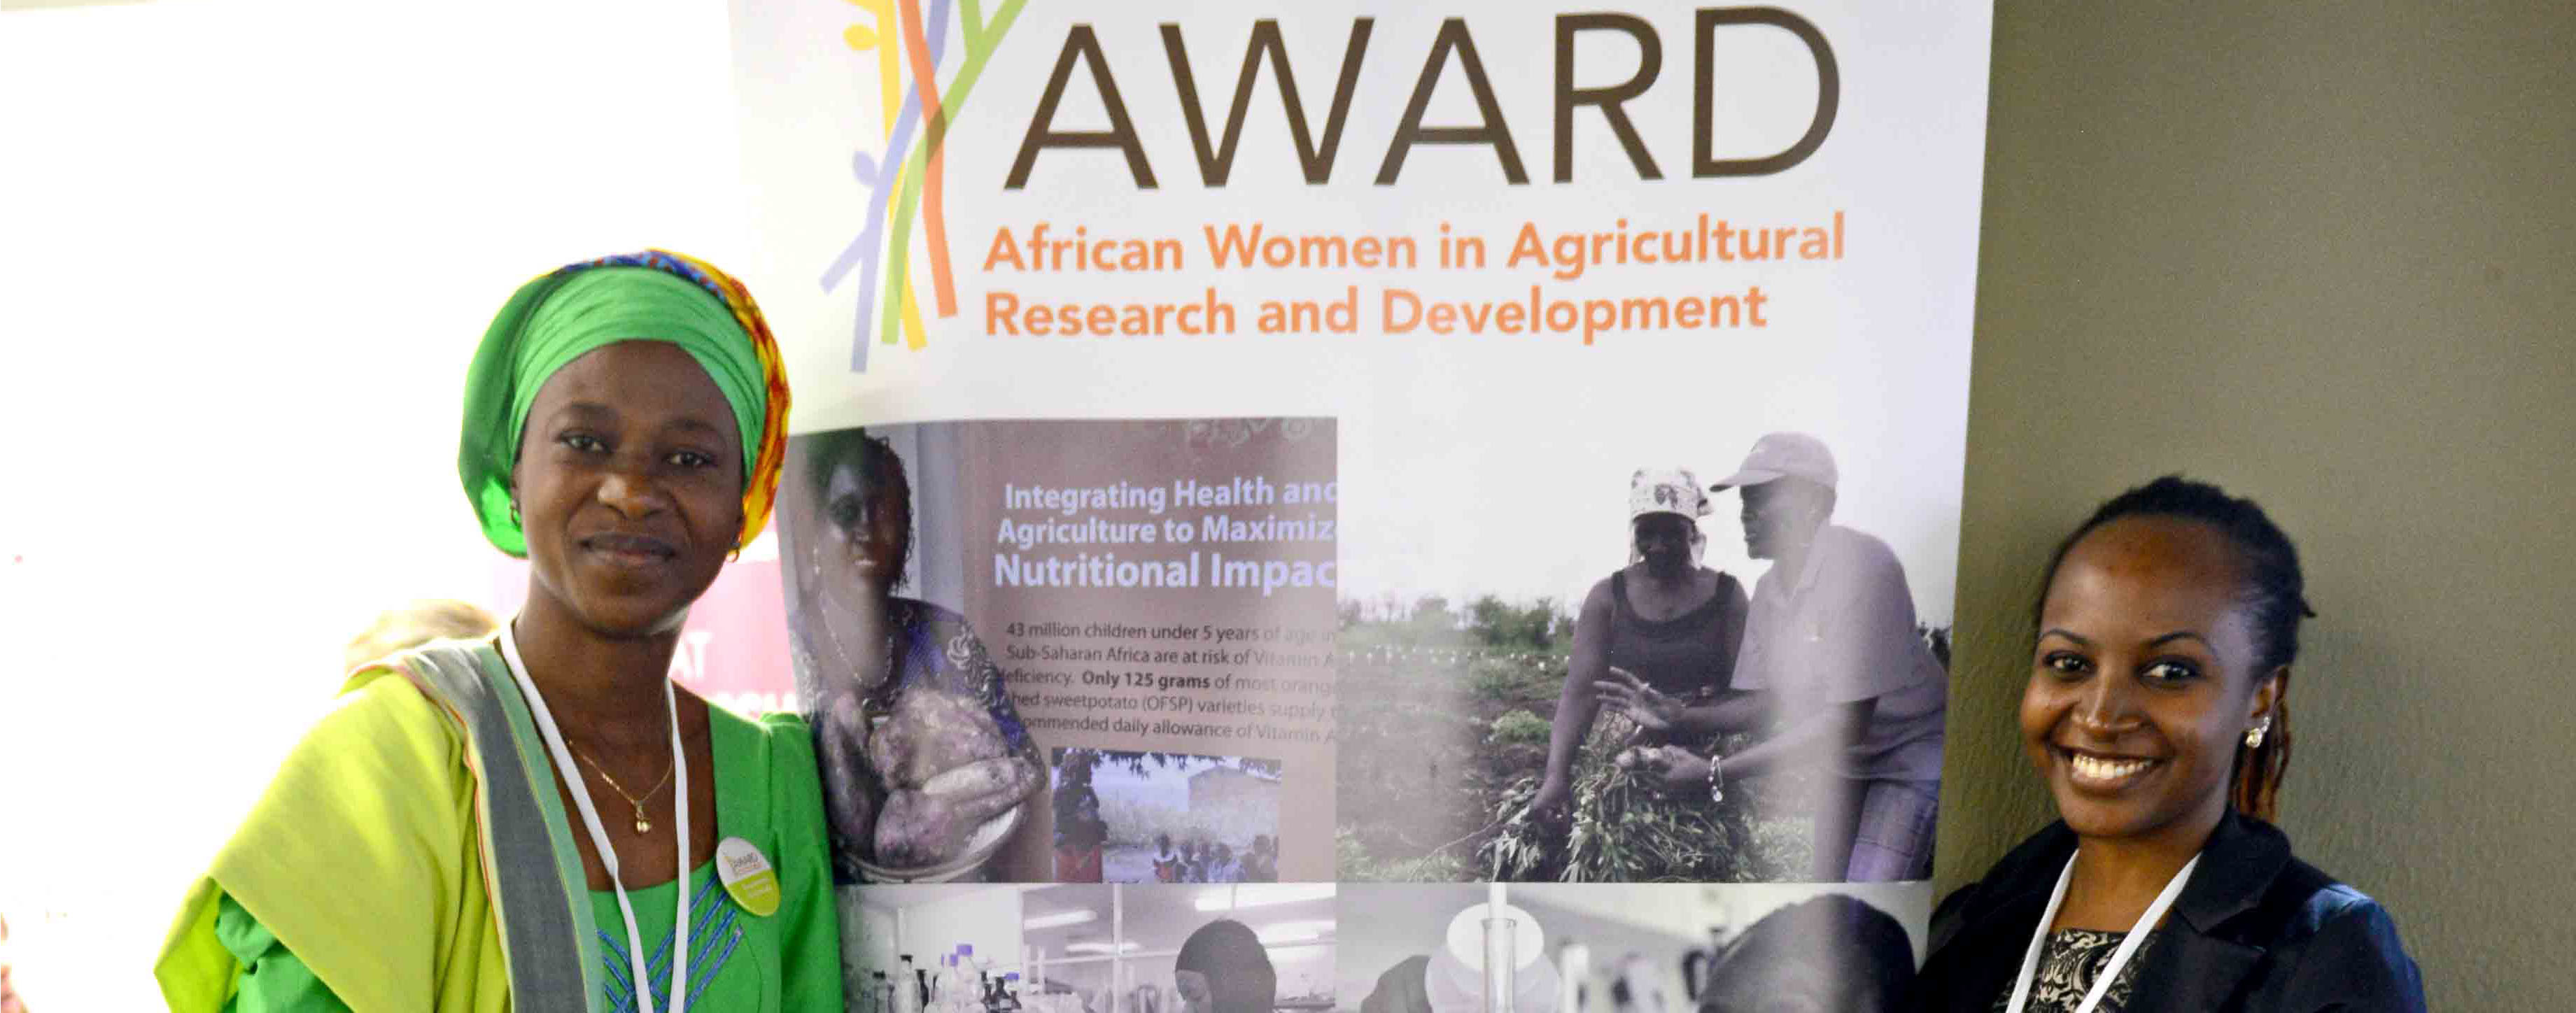 African Women in Agricultural Research & Development (AWARD) Fellowship 2017/18